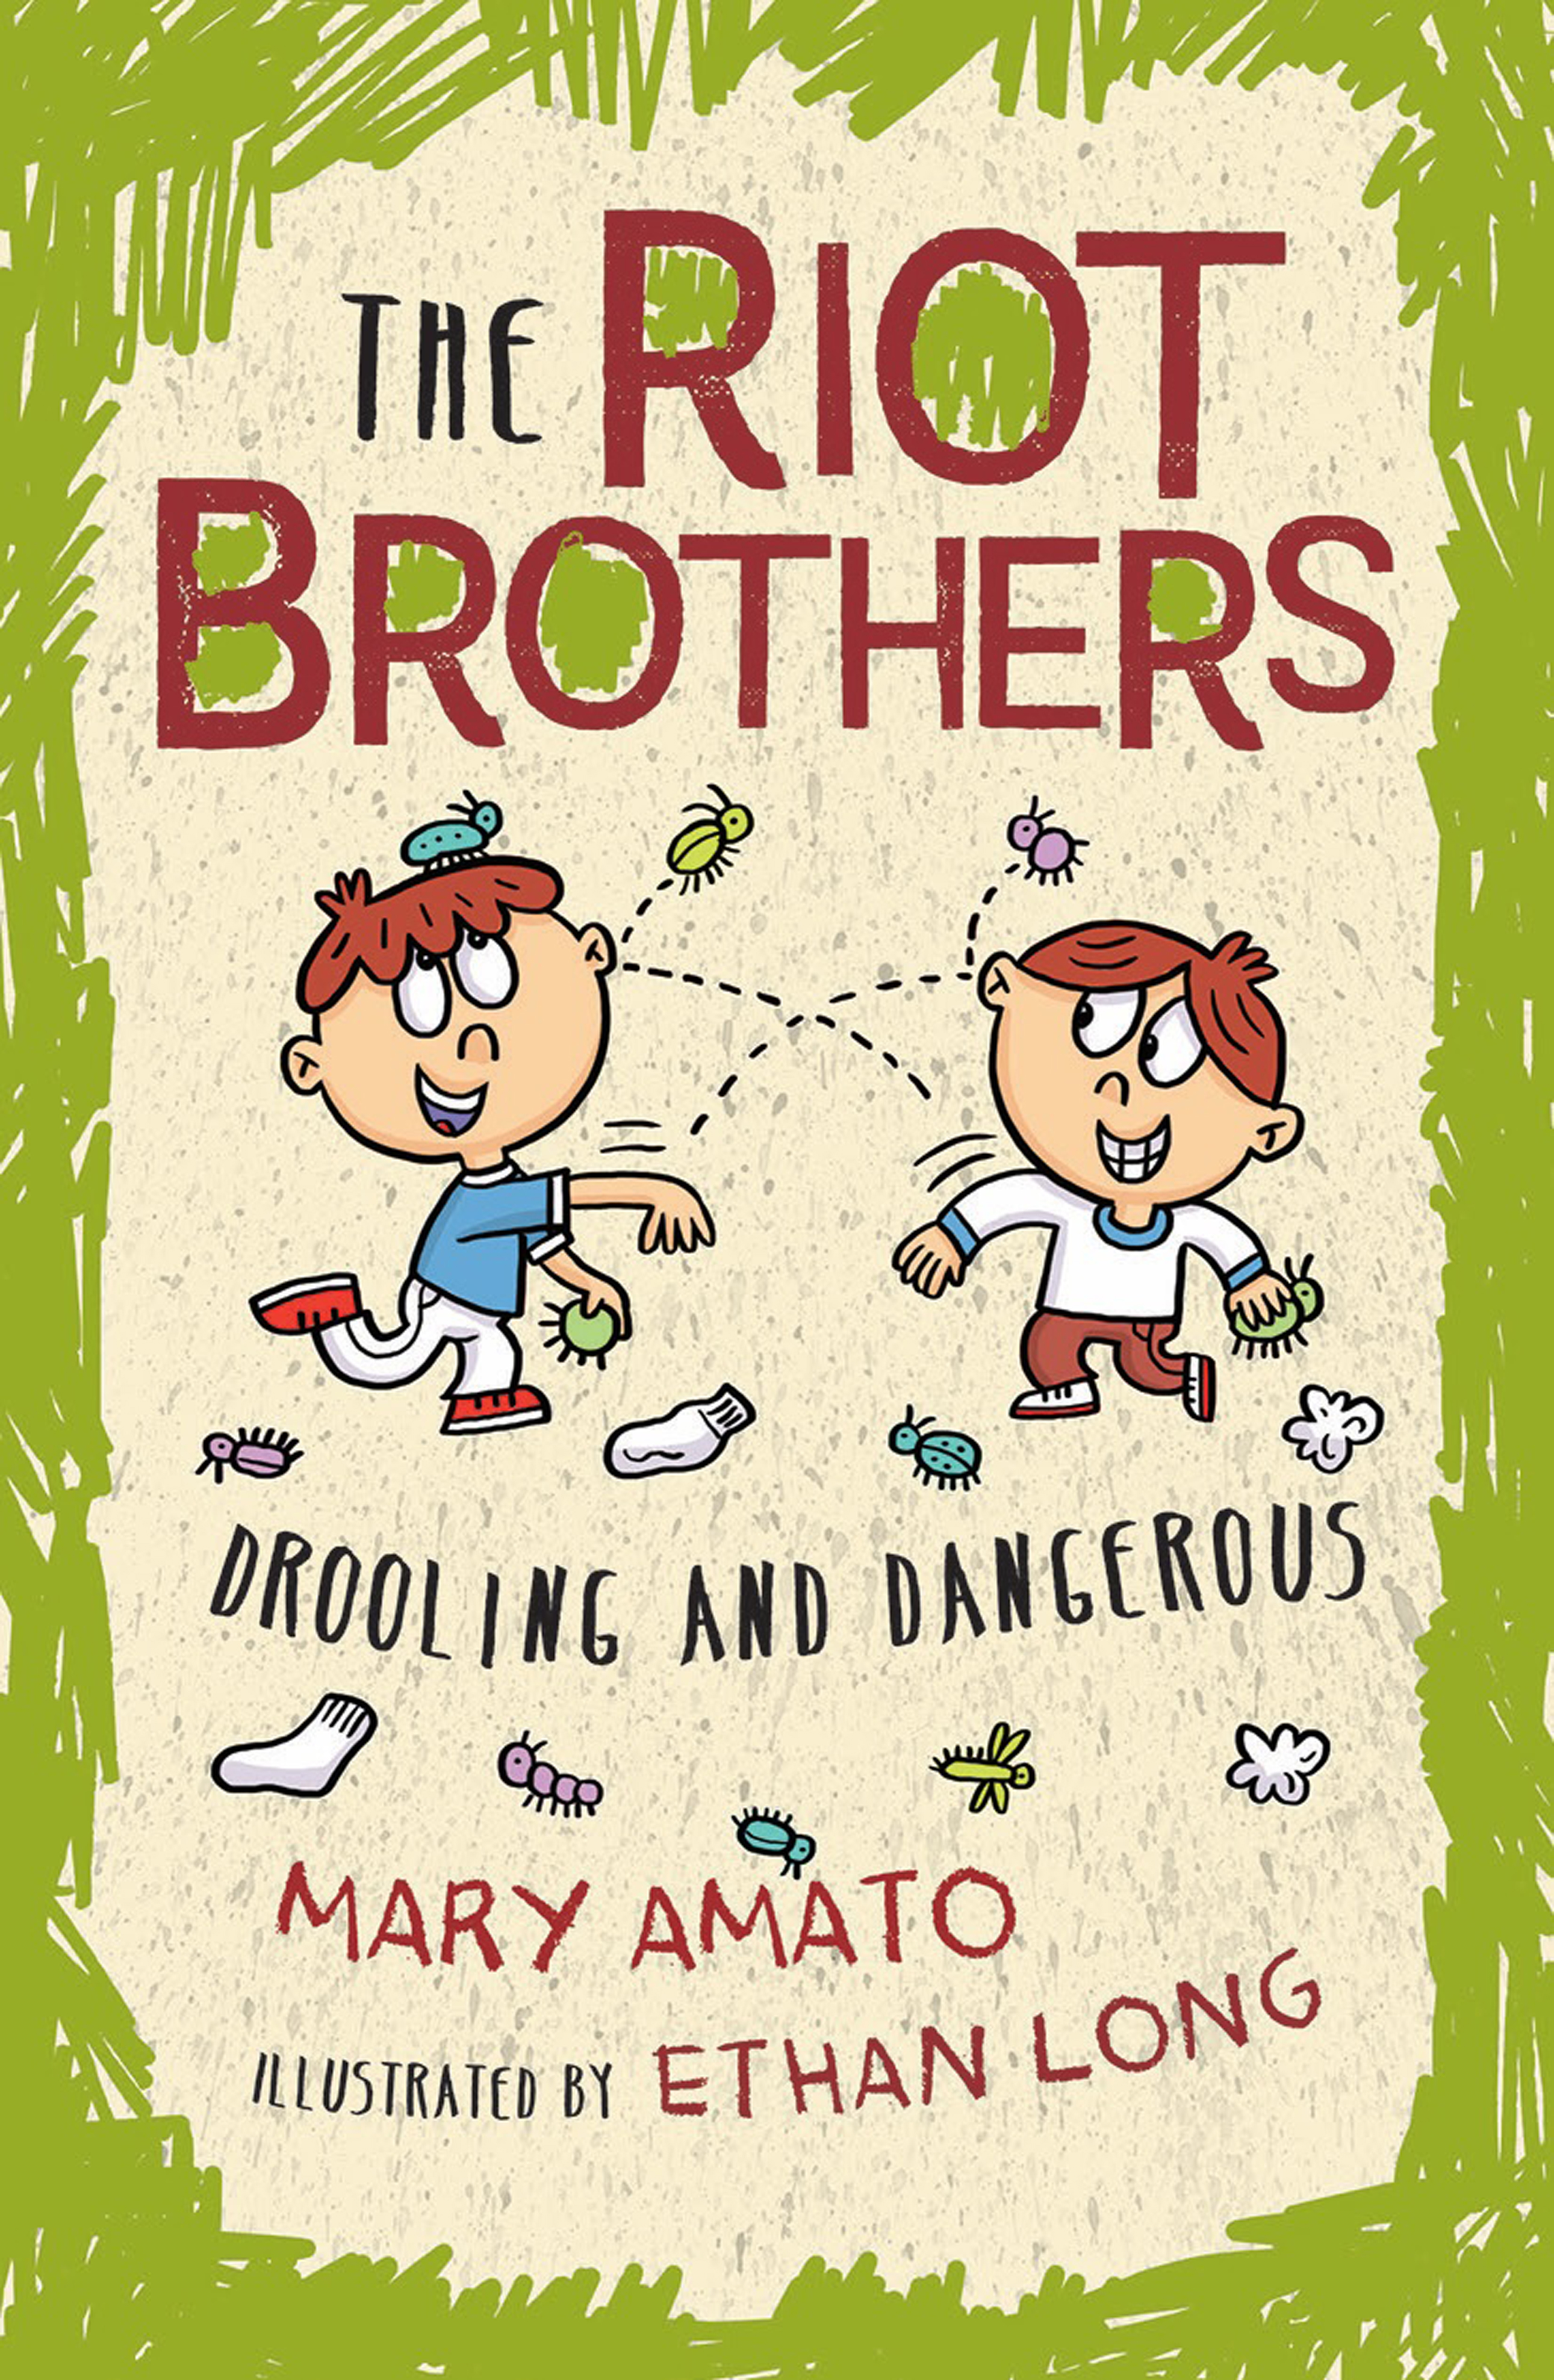 Drooling and Dangerous: The Riot Brothers Return